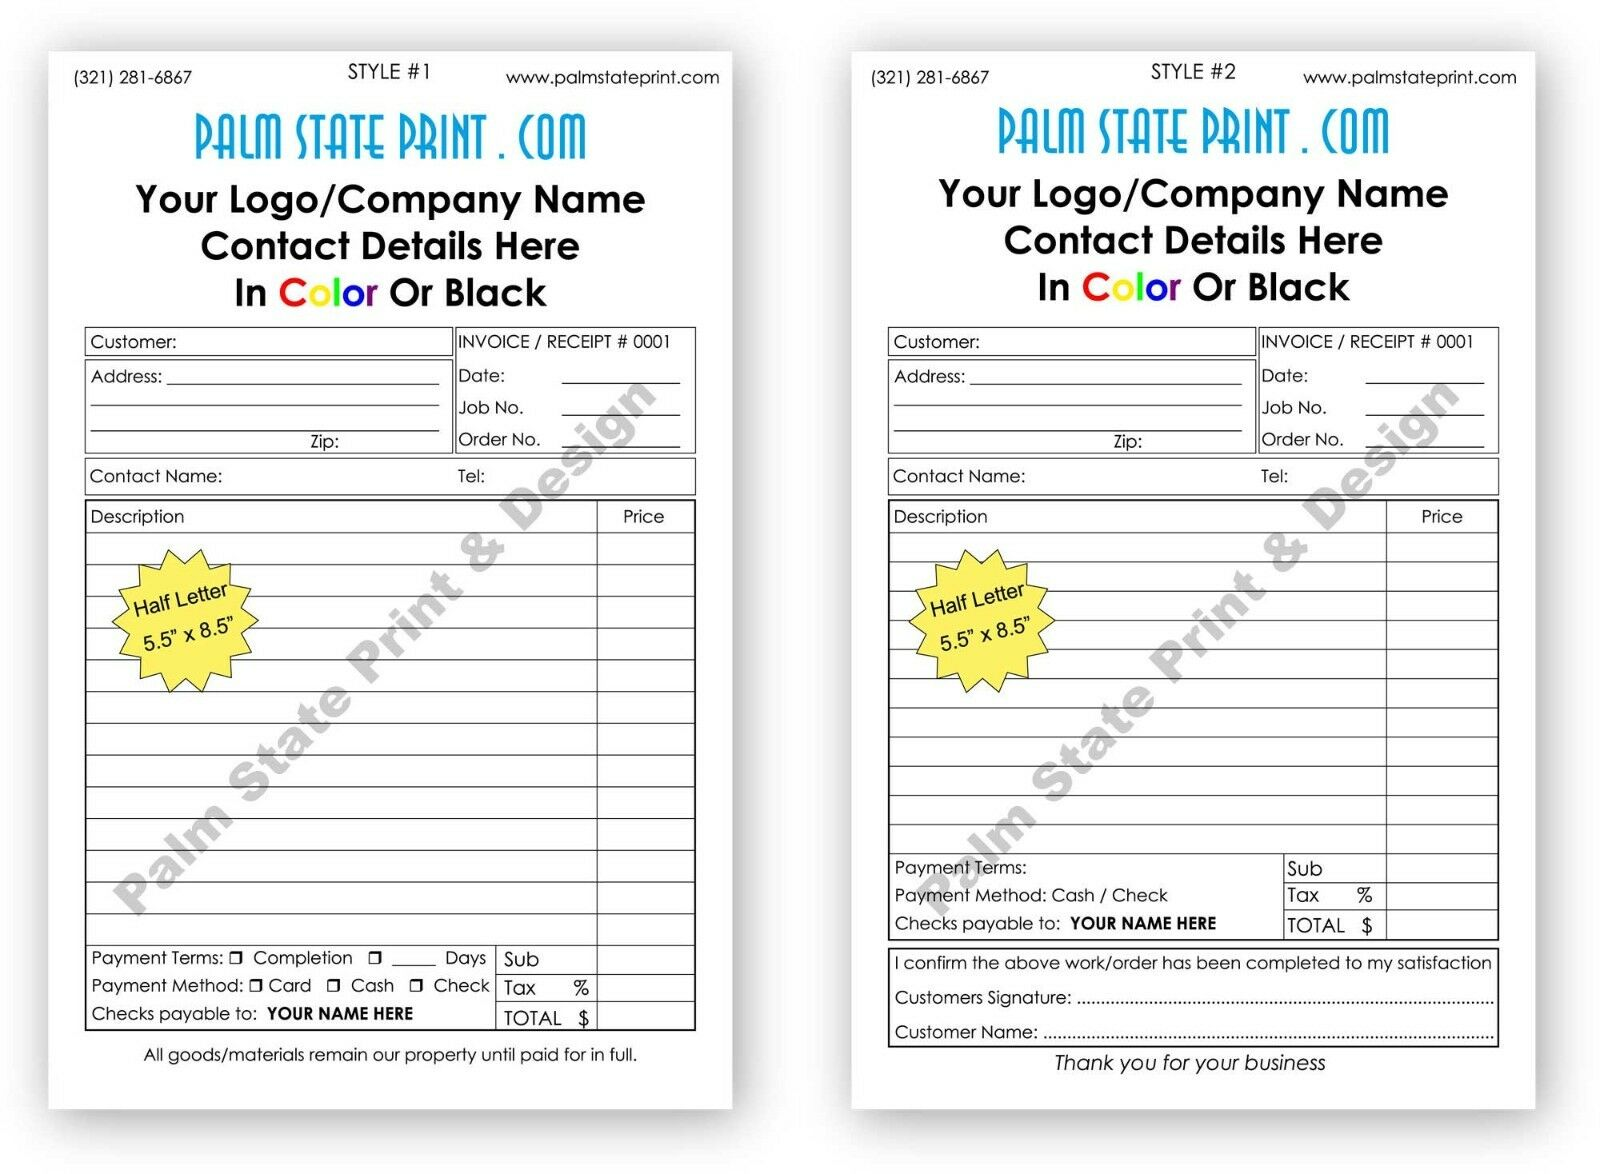 250 2 Part Personalized Duplicate Carbonless Invoice Sales Receipt Estimate Book